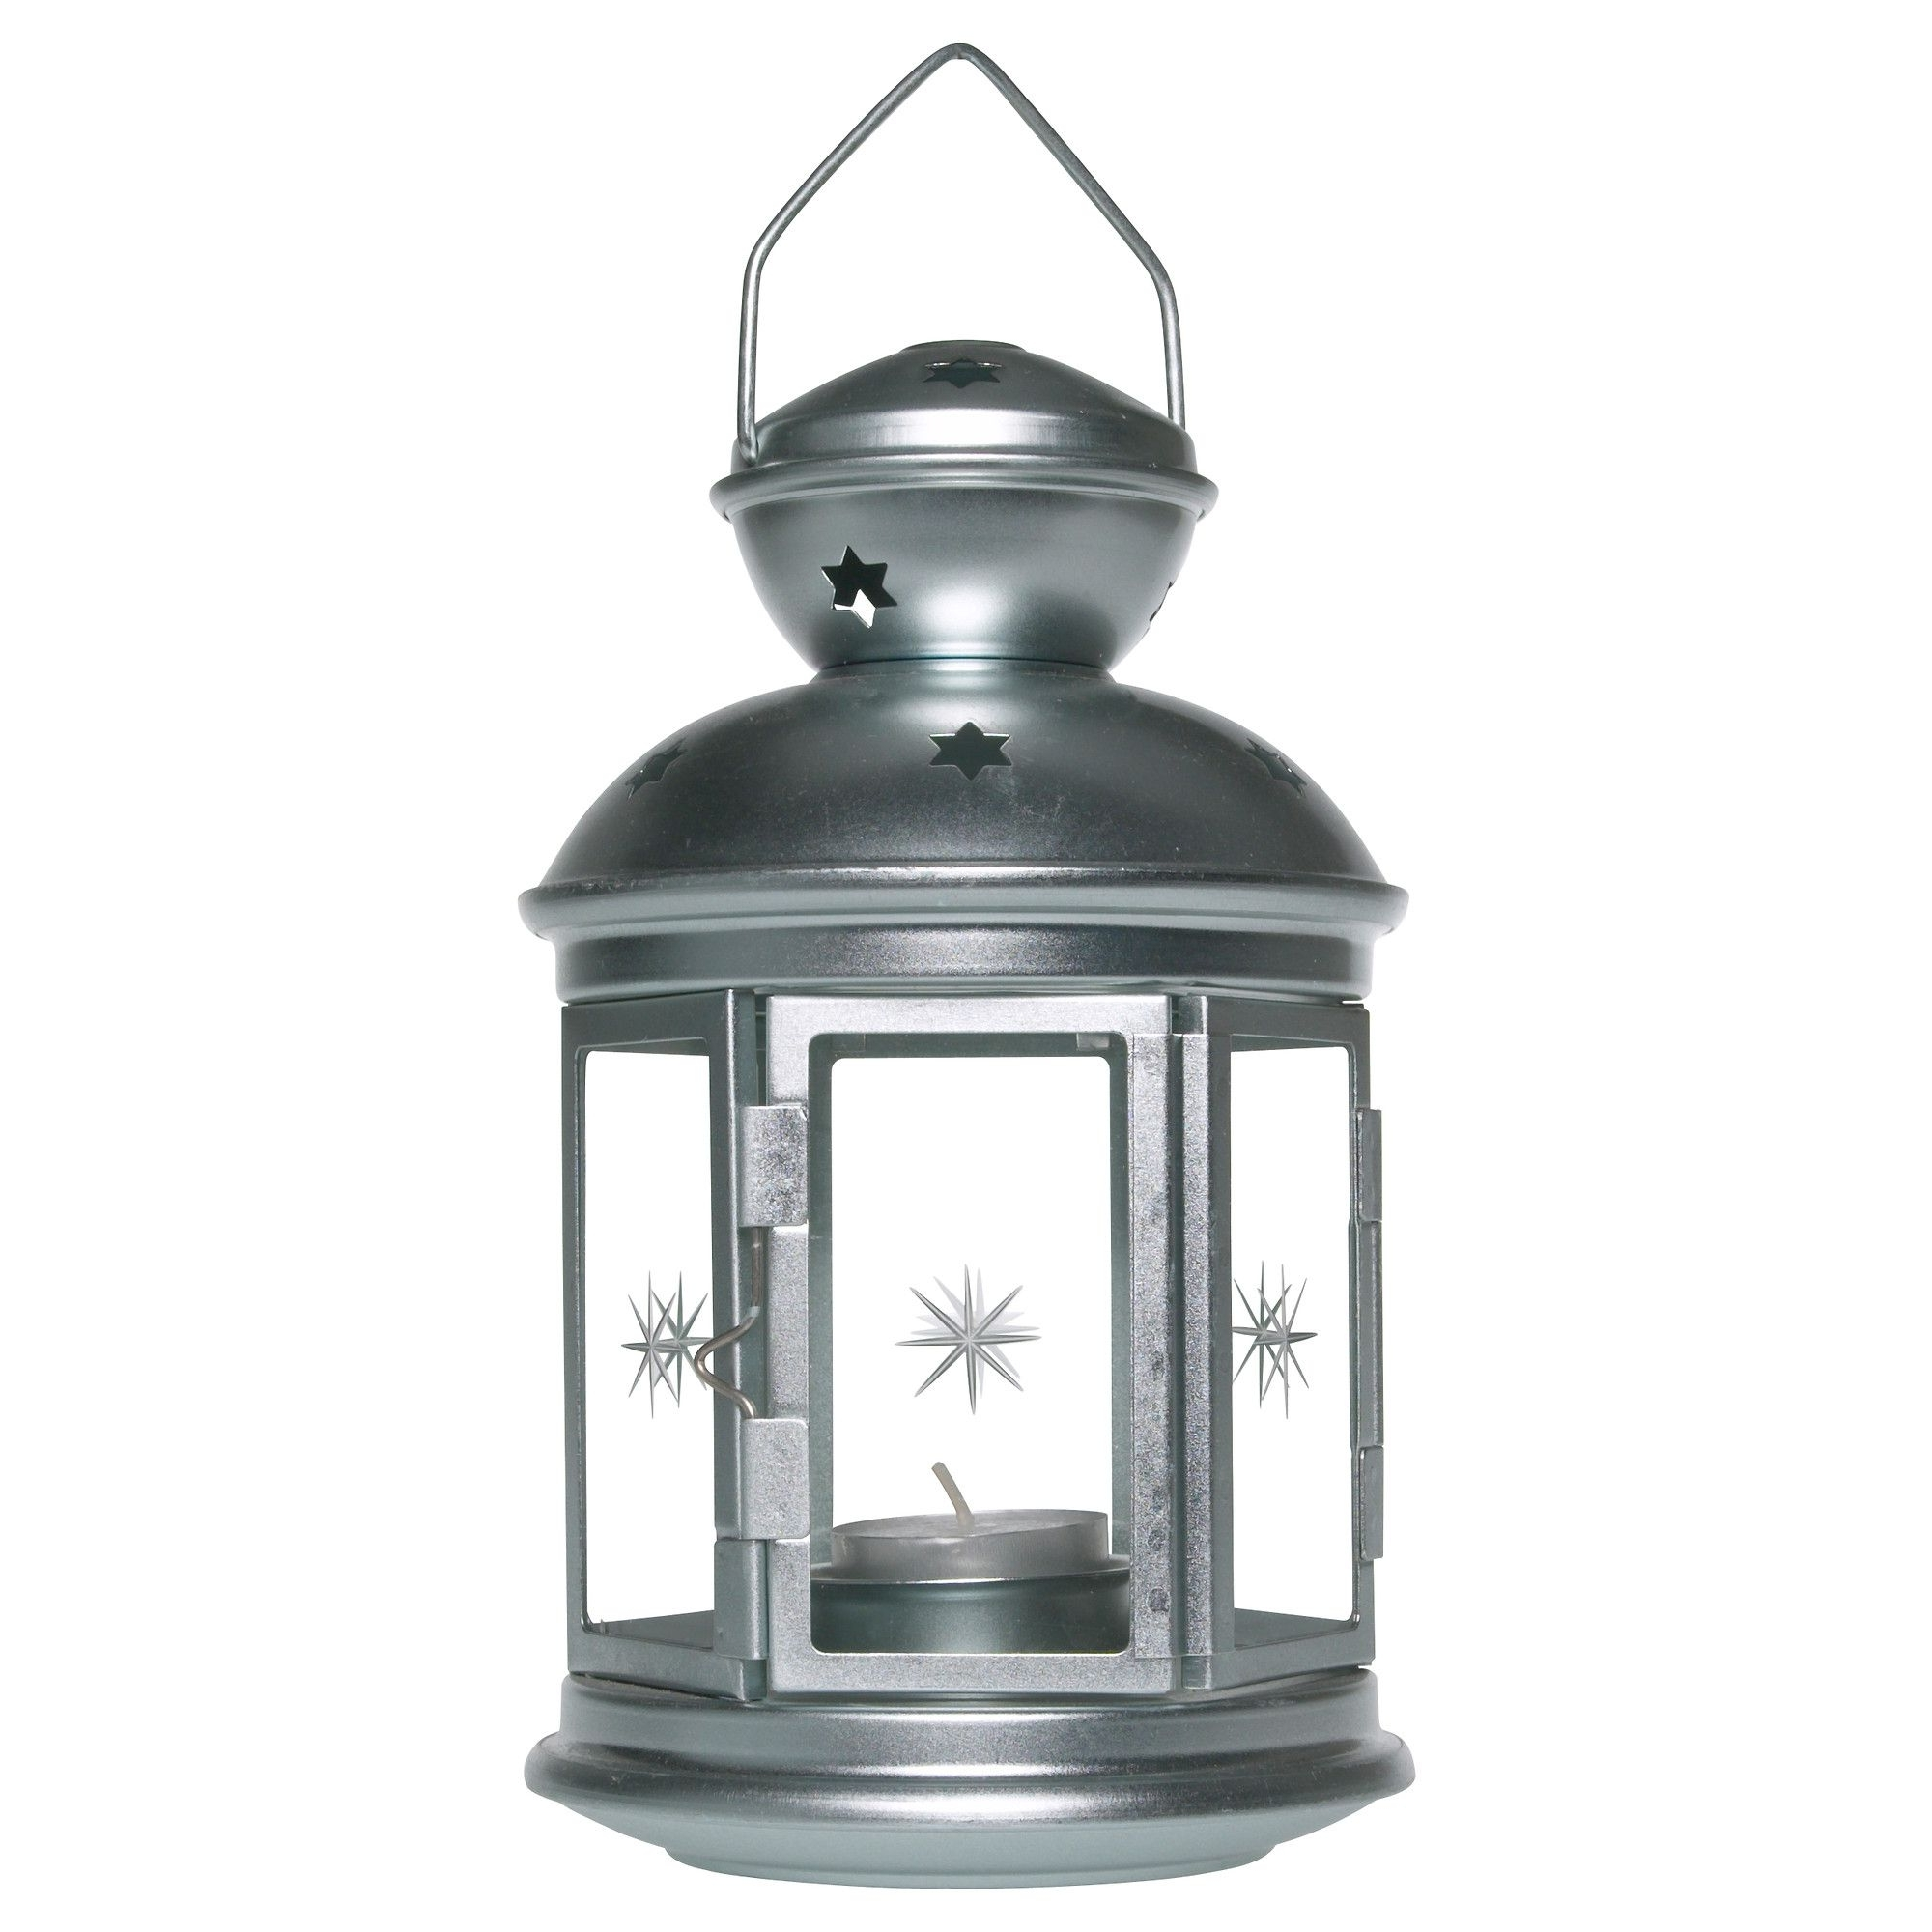 Famous Ikea Outdoor Lanterns Pertaining To Rotera Lantern For Tealight, Galvanized Indoor/outdoor Galvanized (View 3 of 20)